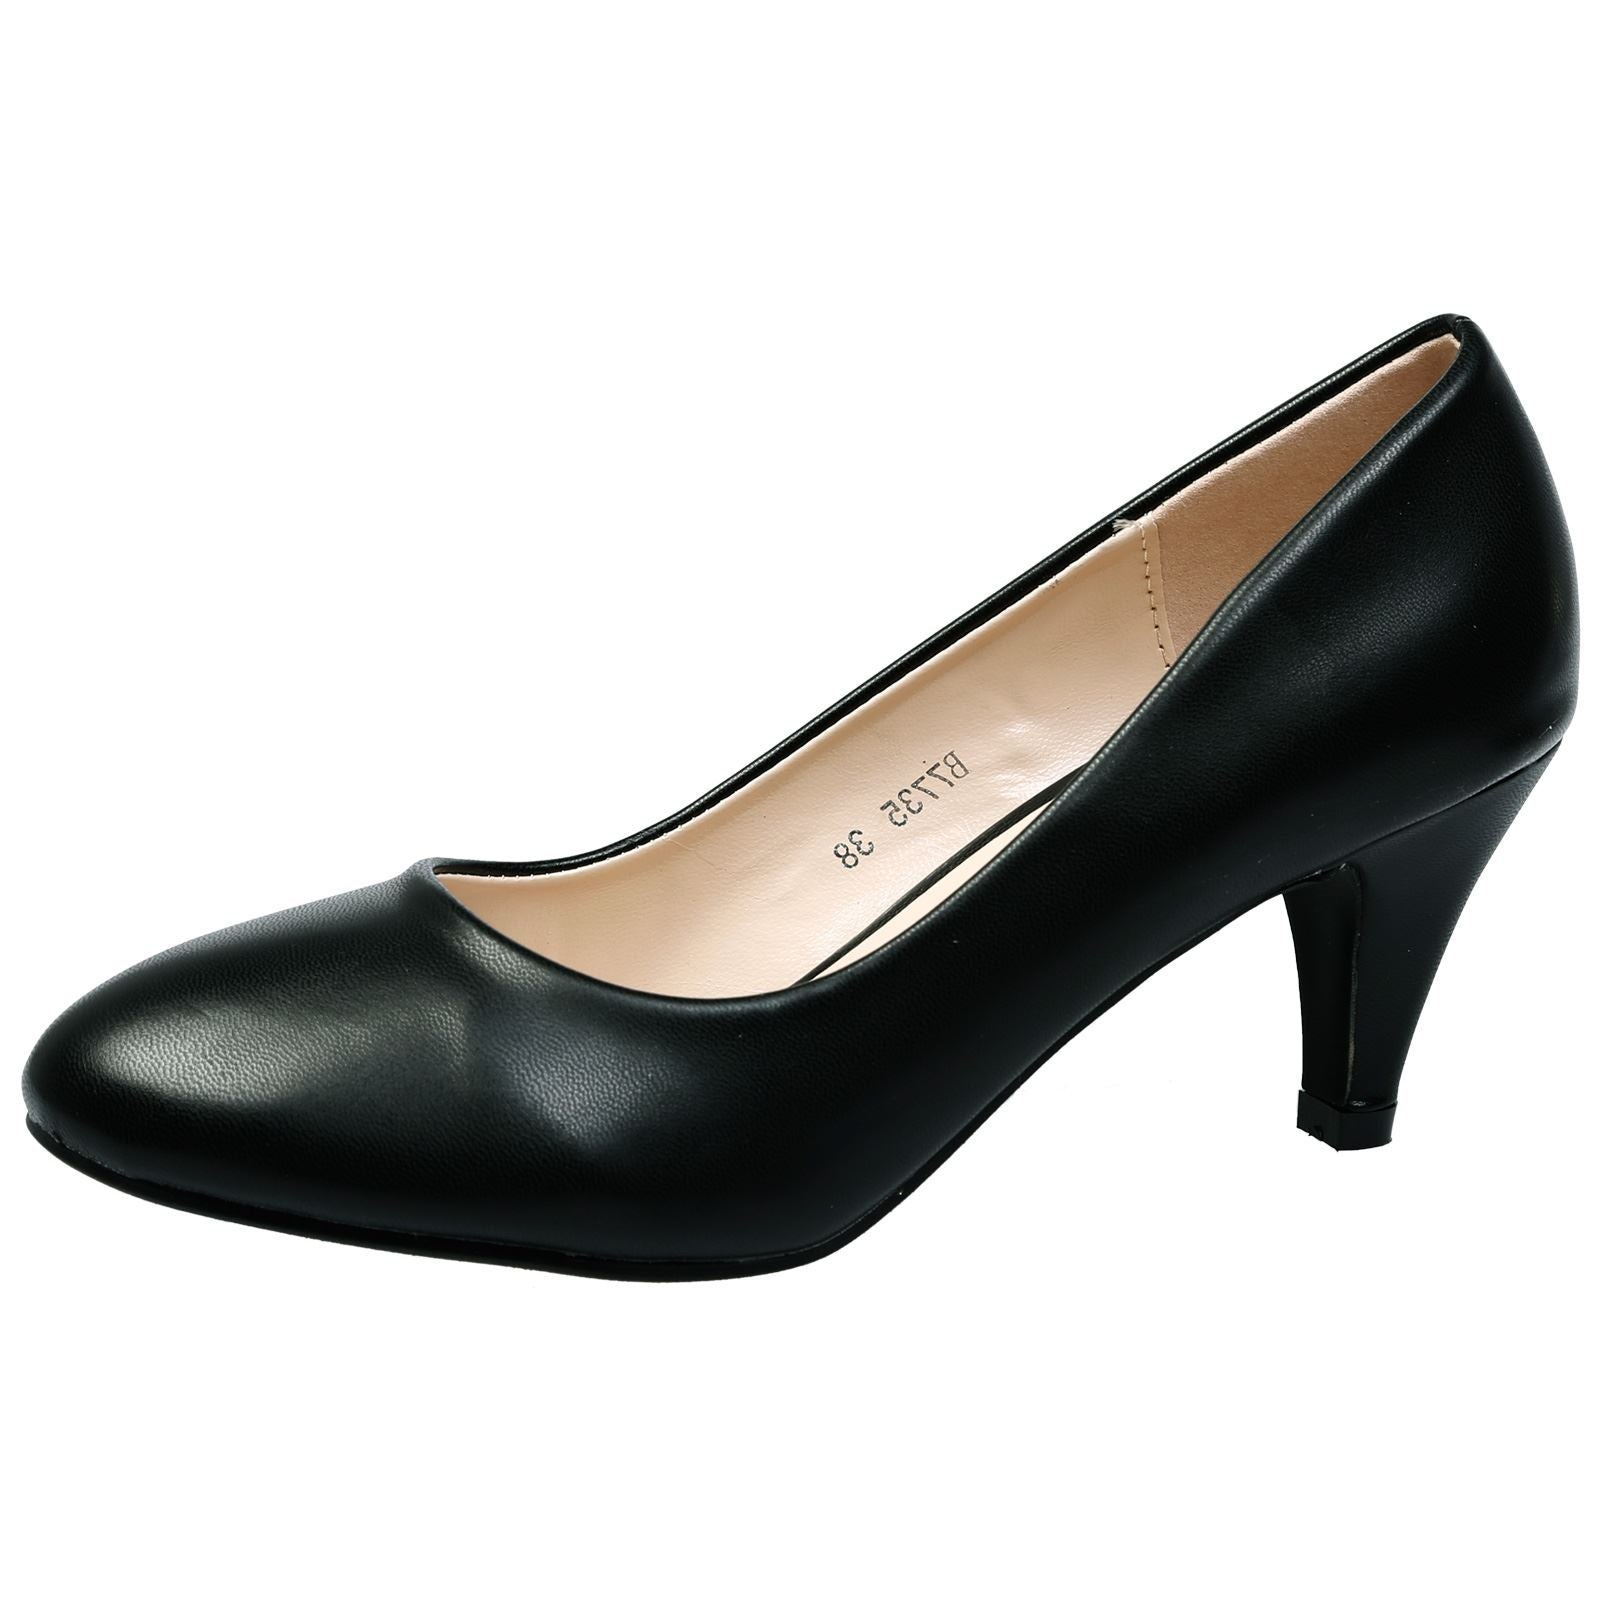 Leona Mid Heel Court Shoes in Black Faux Leather